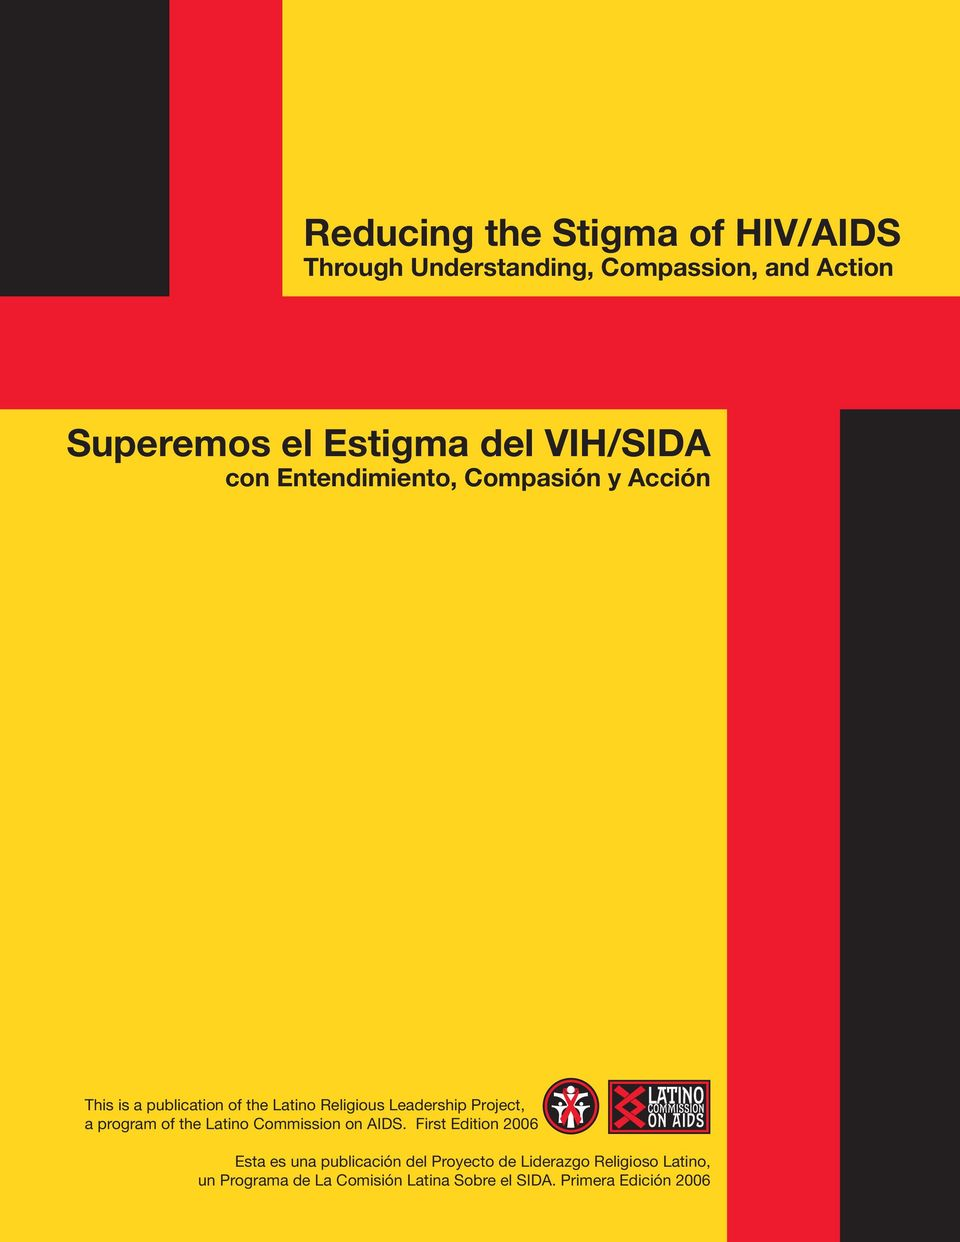 Project, a program of the Latino Commission on AIDS.